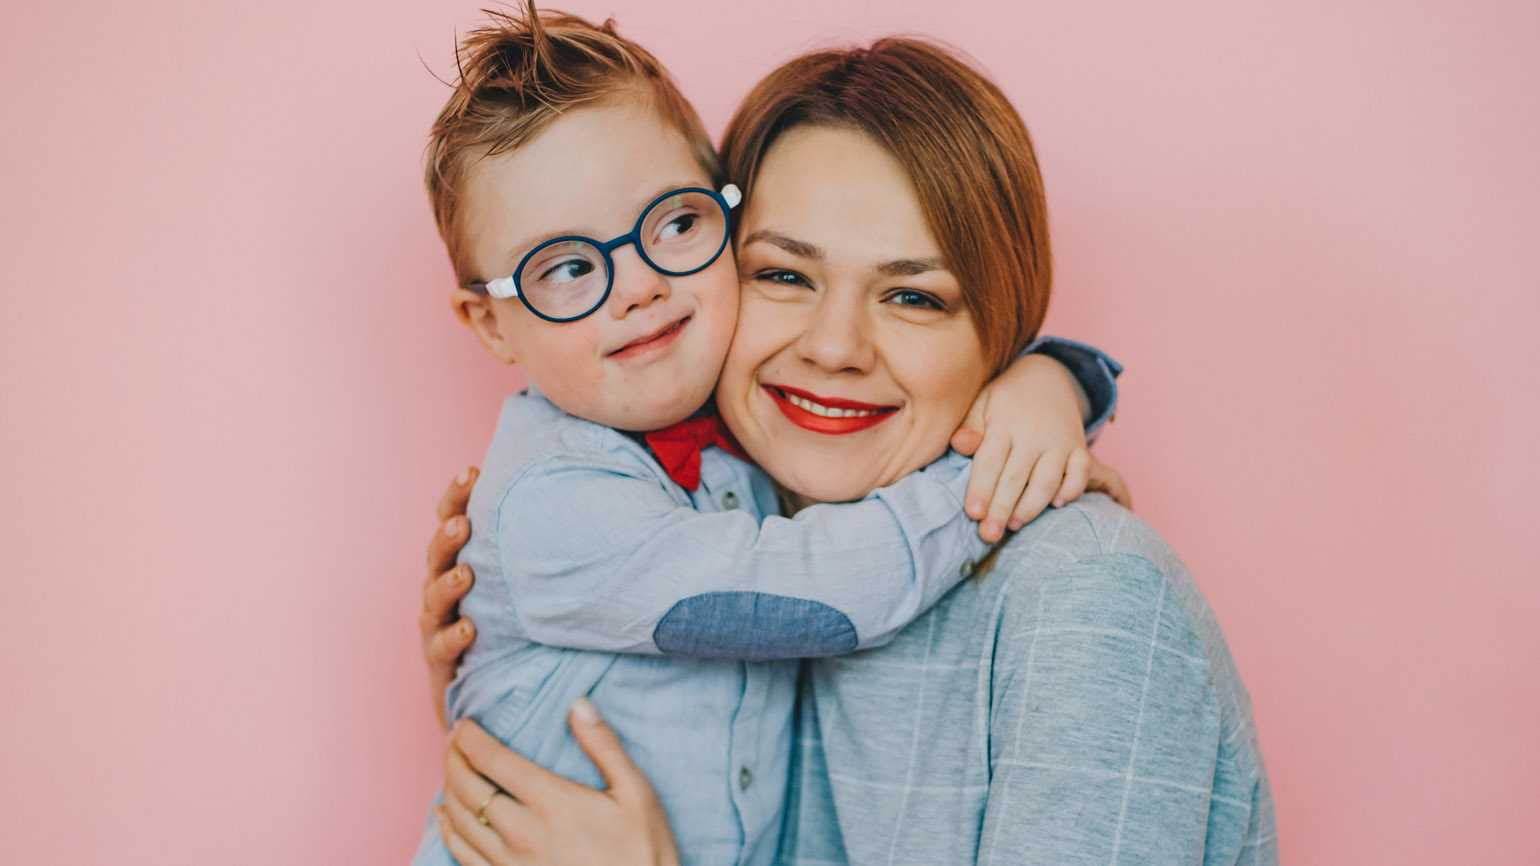 A mother and her son who has Down syndrome.